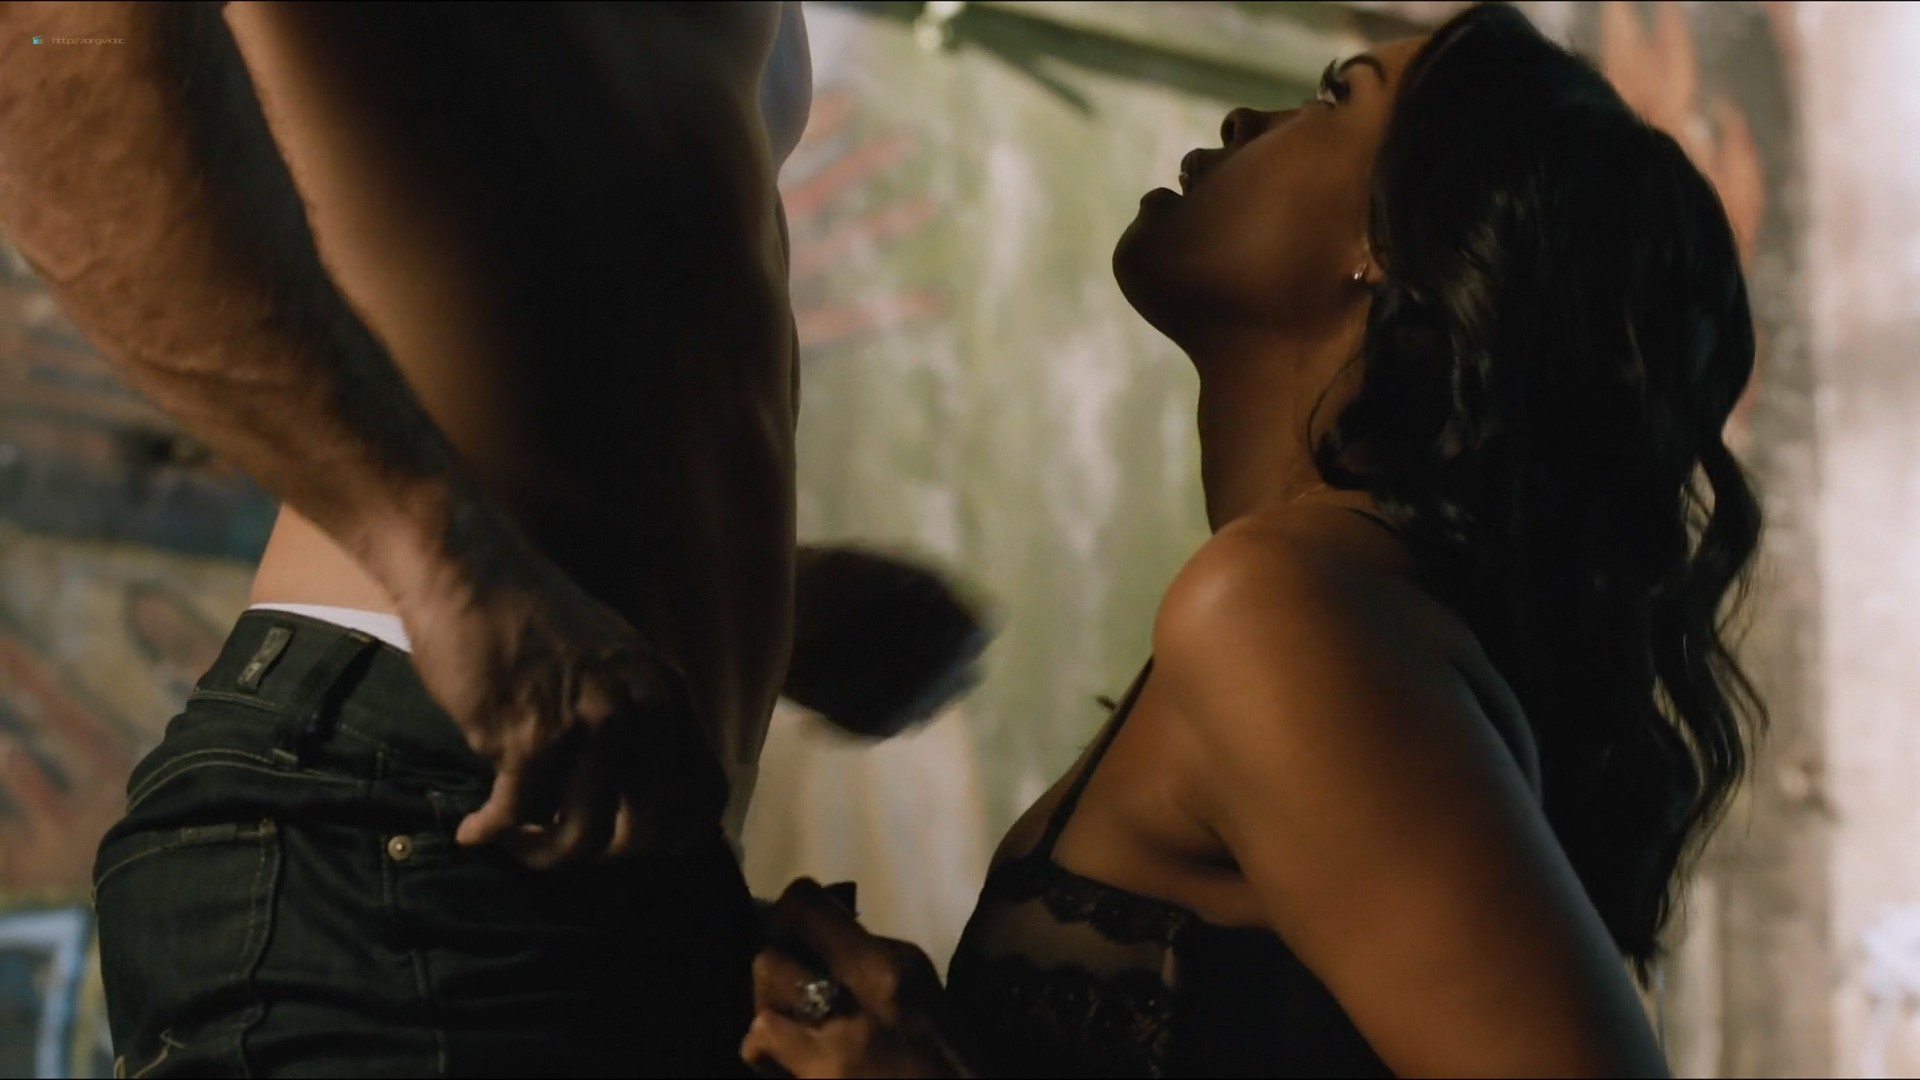 Sharon Leal nude and lot of sex others nude too - Addicted (2014) HD 1080p (11)